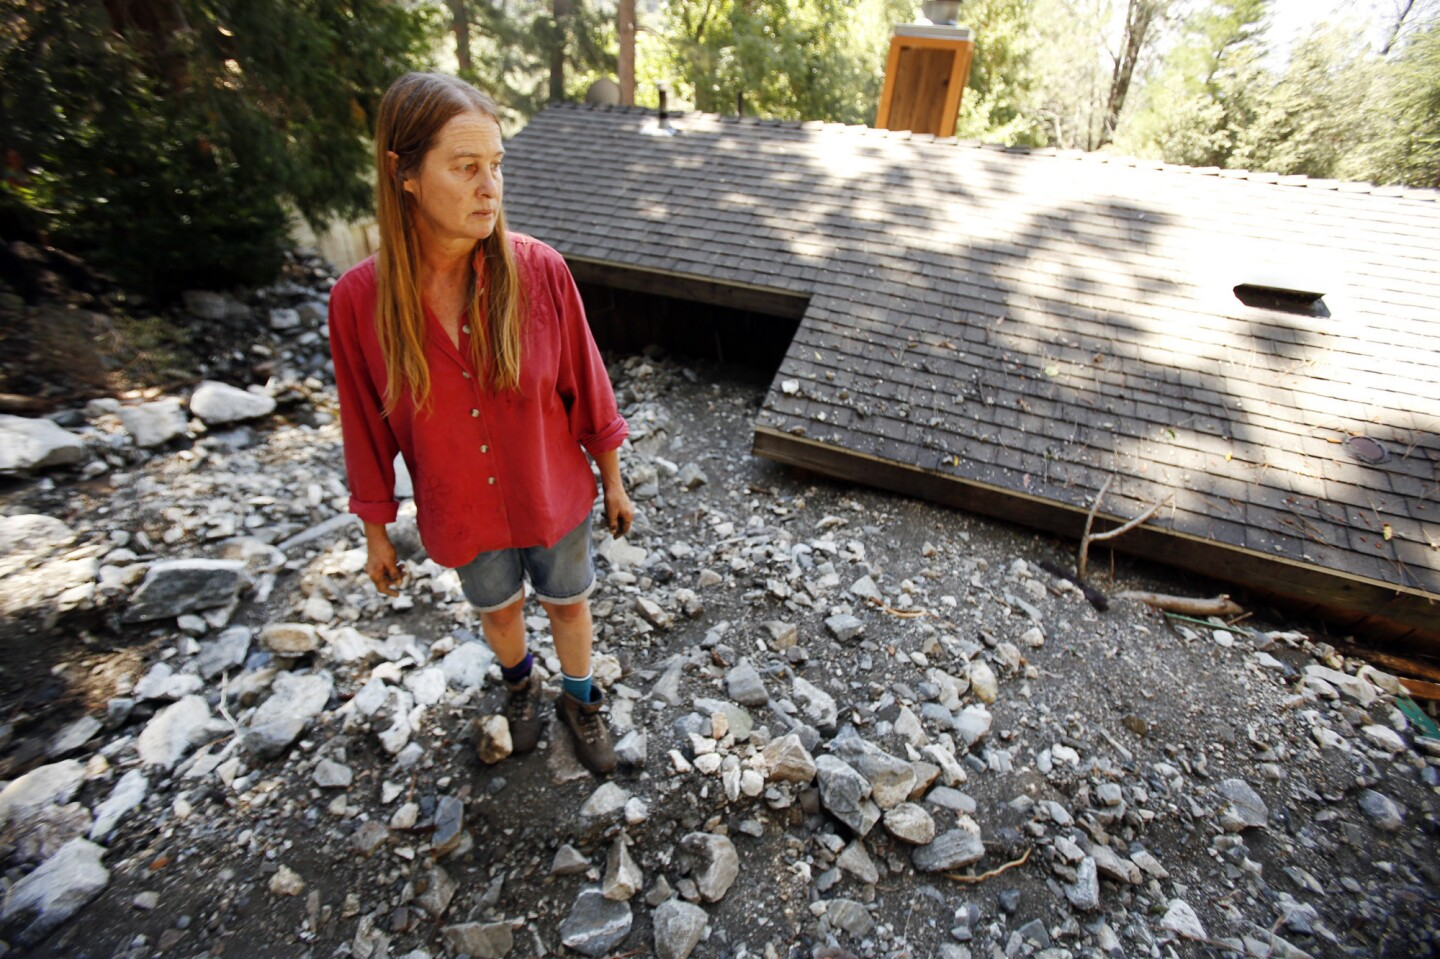 Michelle Olson walks around her house that was inundated with rocks and debris during Sunday's downpour.